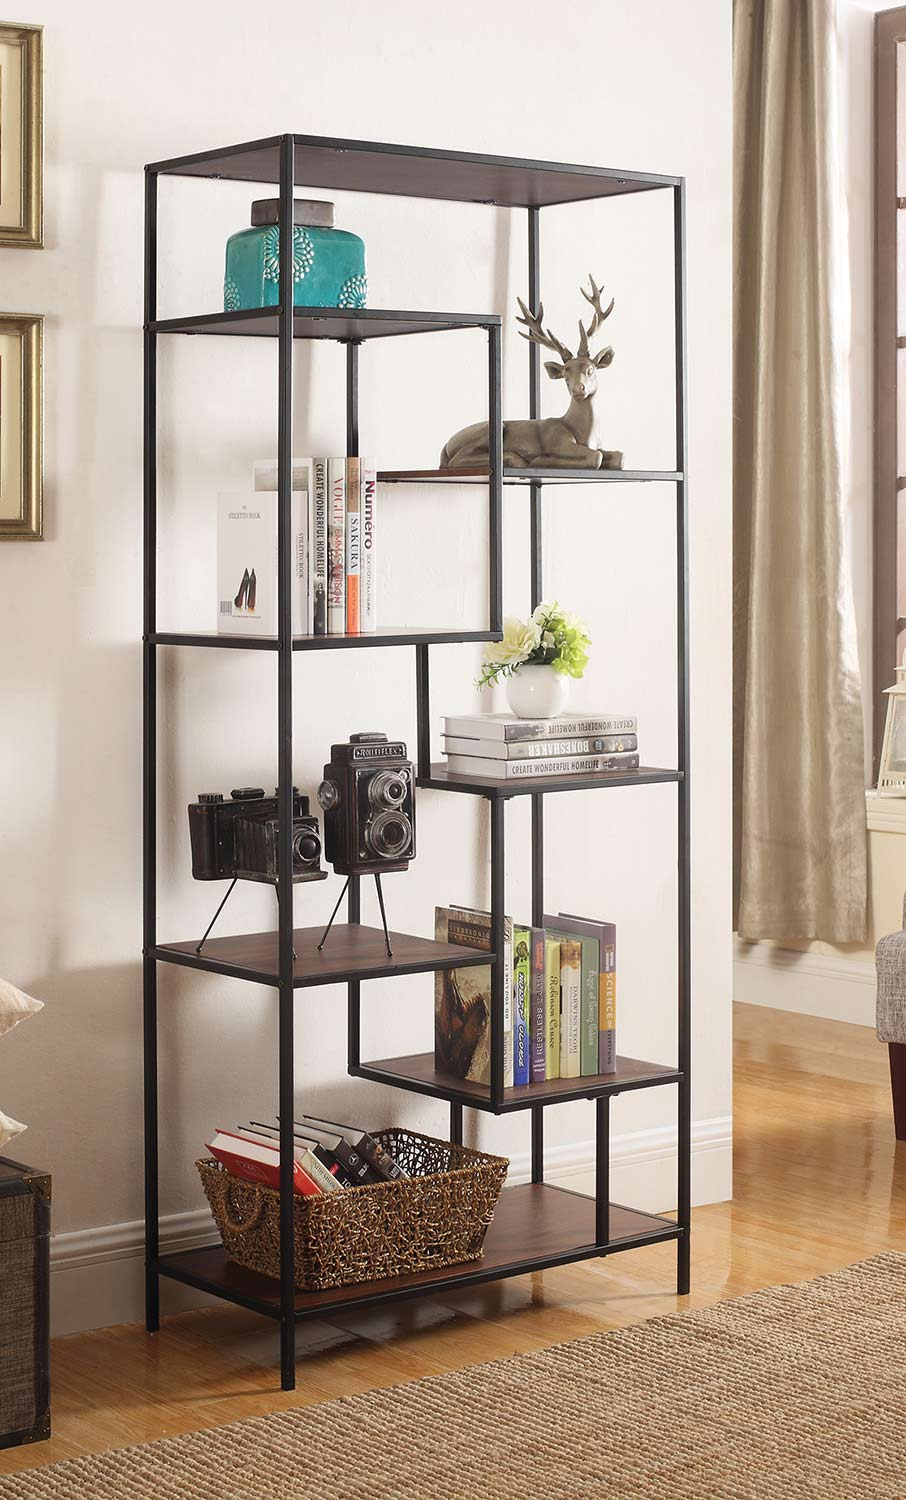 Coaster 801134 Bookcase - Walnut